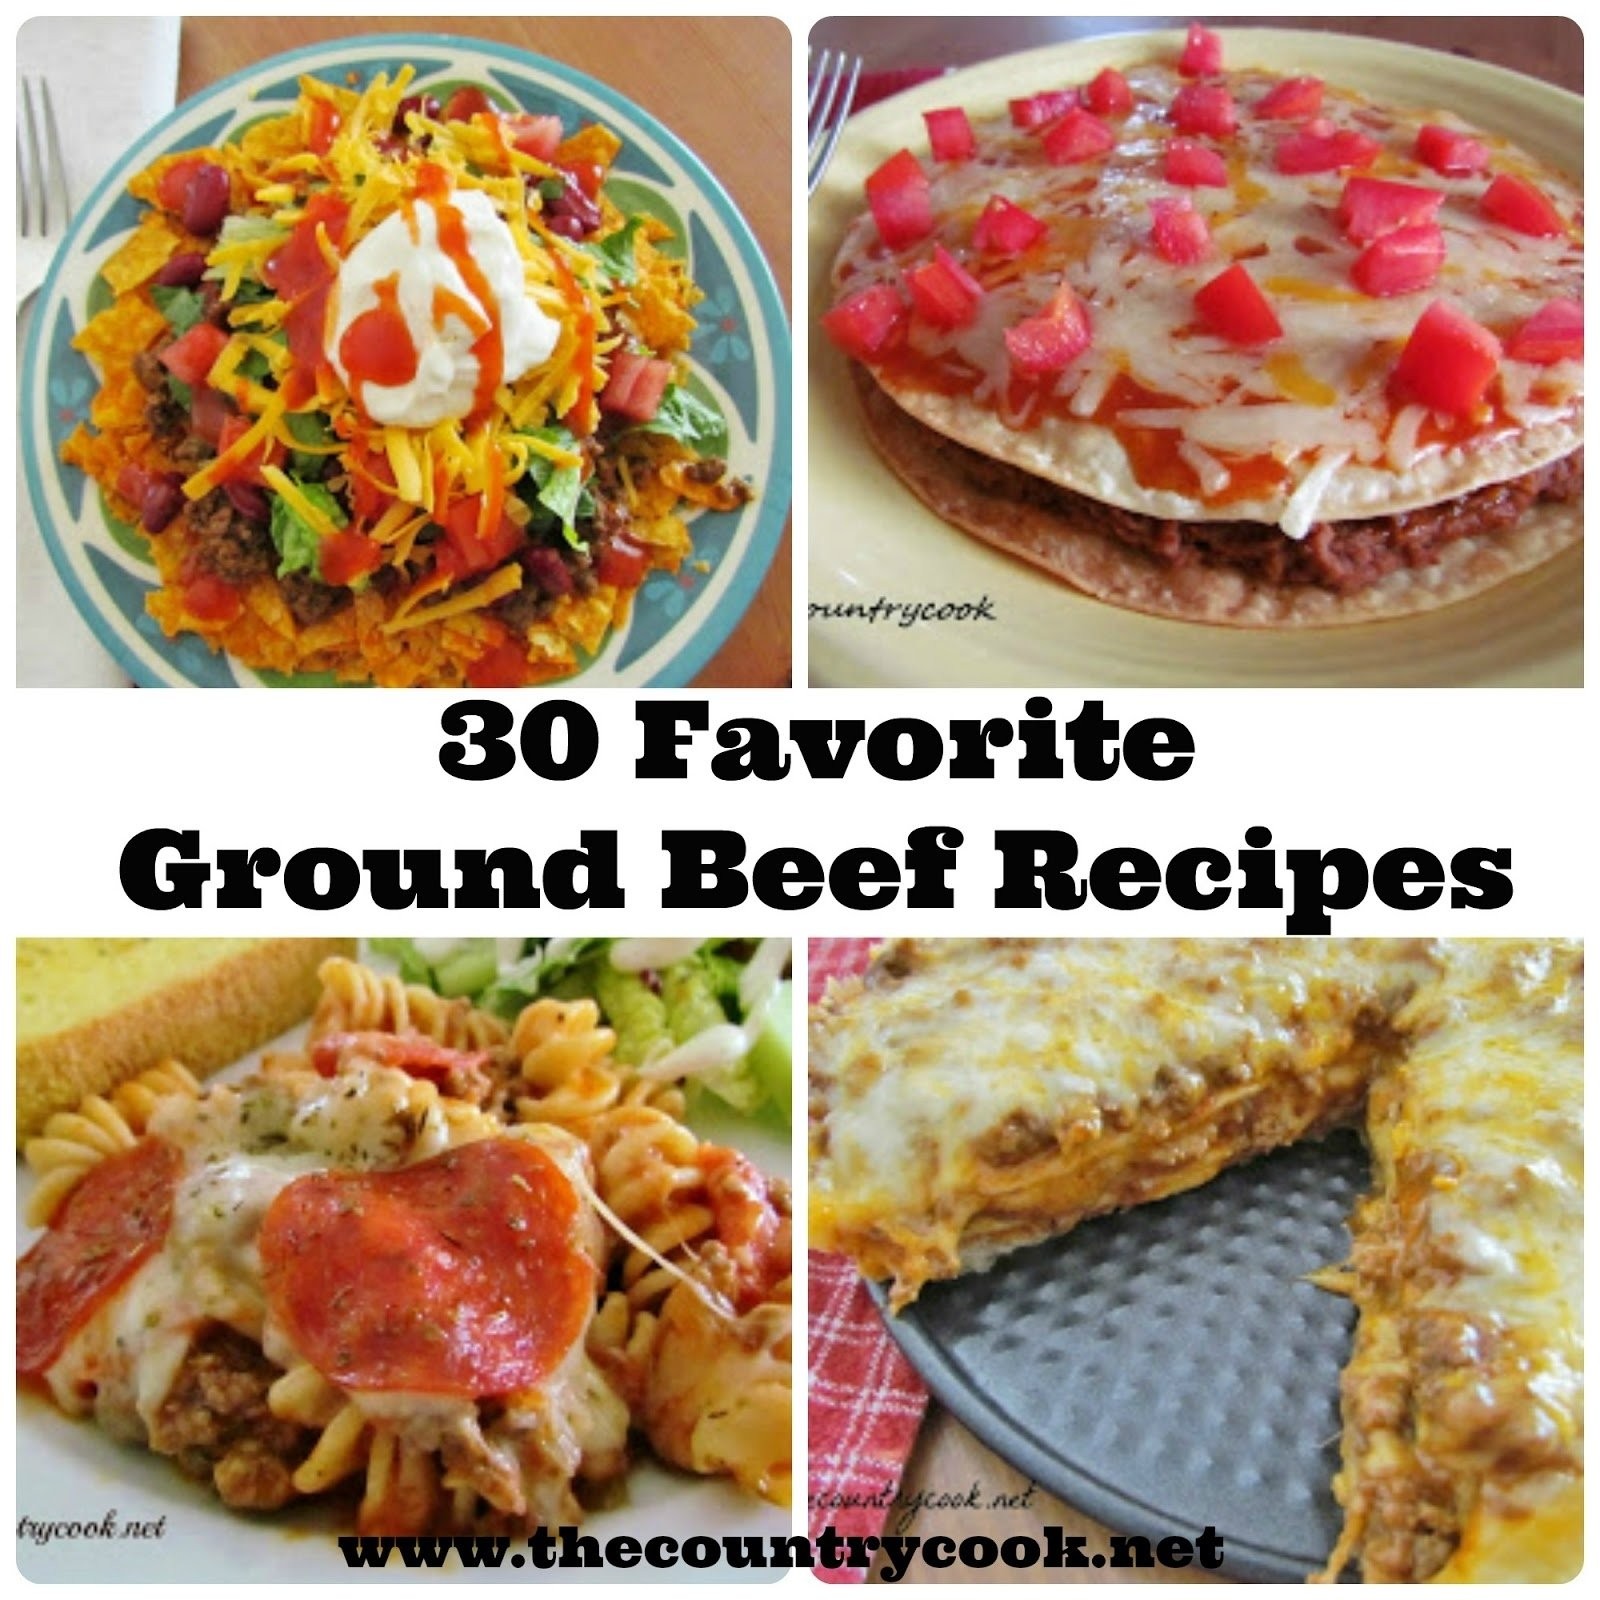 10 Awesome Easy Dinner Ideas With Hamburger Meat 30 favorite ground beef recipes the country cook 2 2020